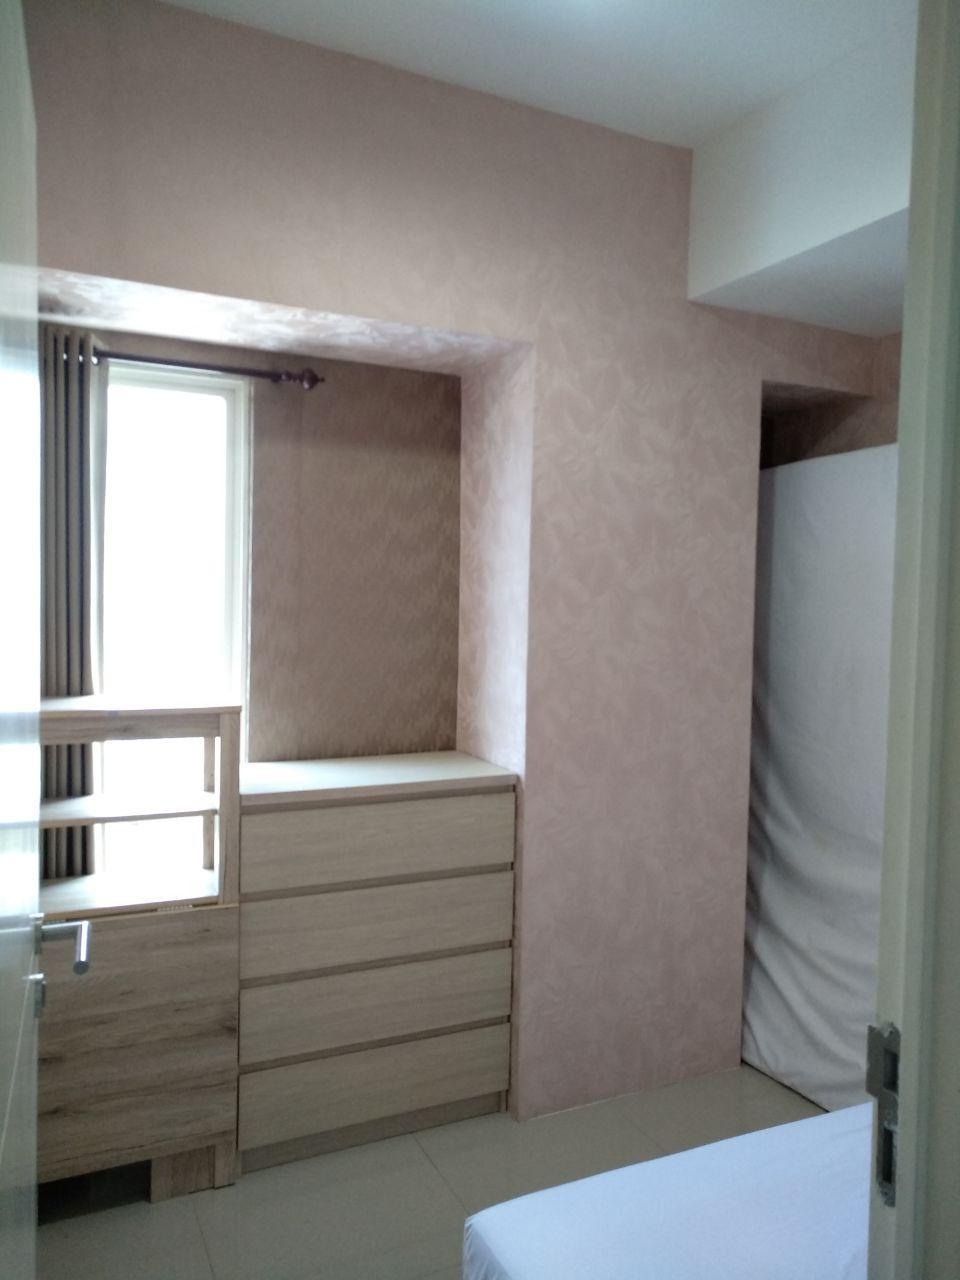 2 Bedroom With Extrabed Apartment @Pakuwon Mall